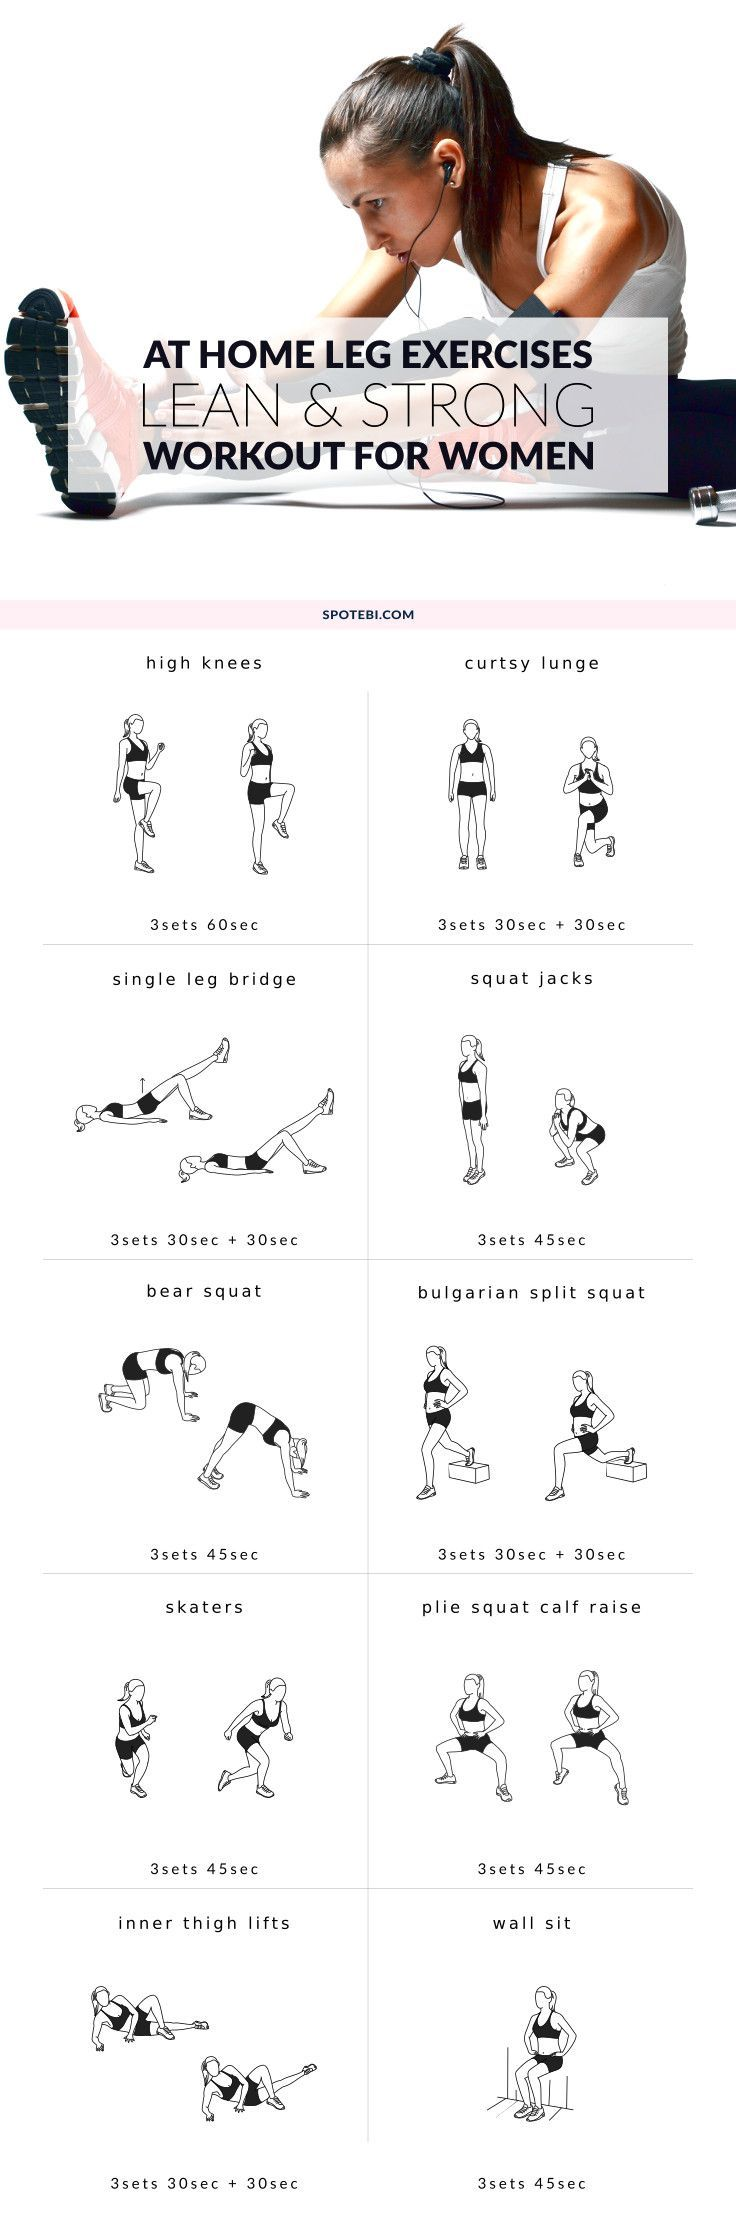 Upgrade your workout routine with these 10 leg exercises for women. Work your thighs, hips, quads, hamstrings and calves at home to build shapely legs and get the lean and strong lower body you've always wanted! http://www.spotebi.com/workout-routines/at-home-leg-exercises-women/